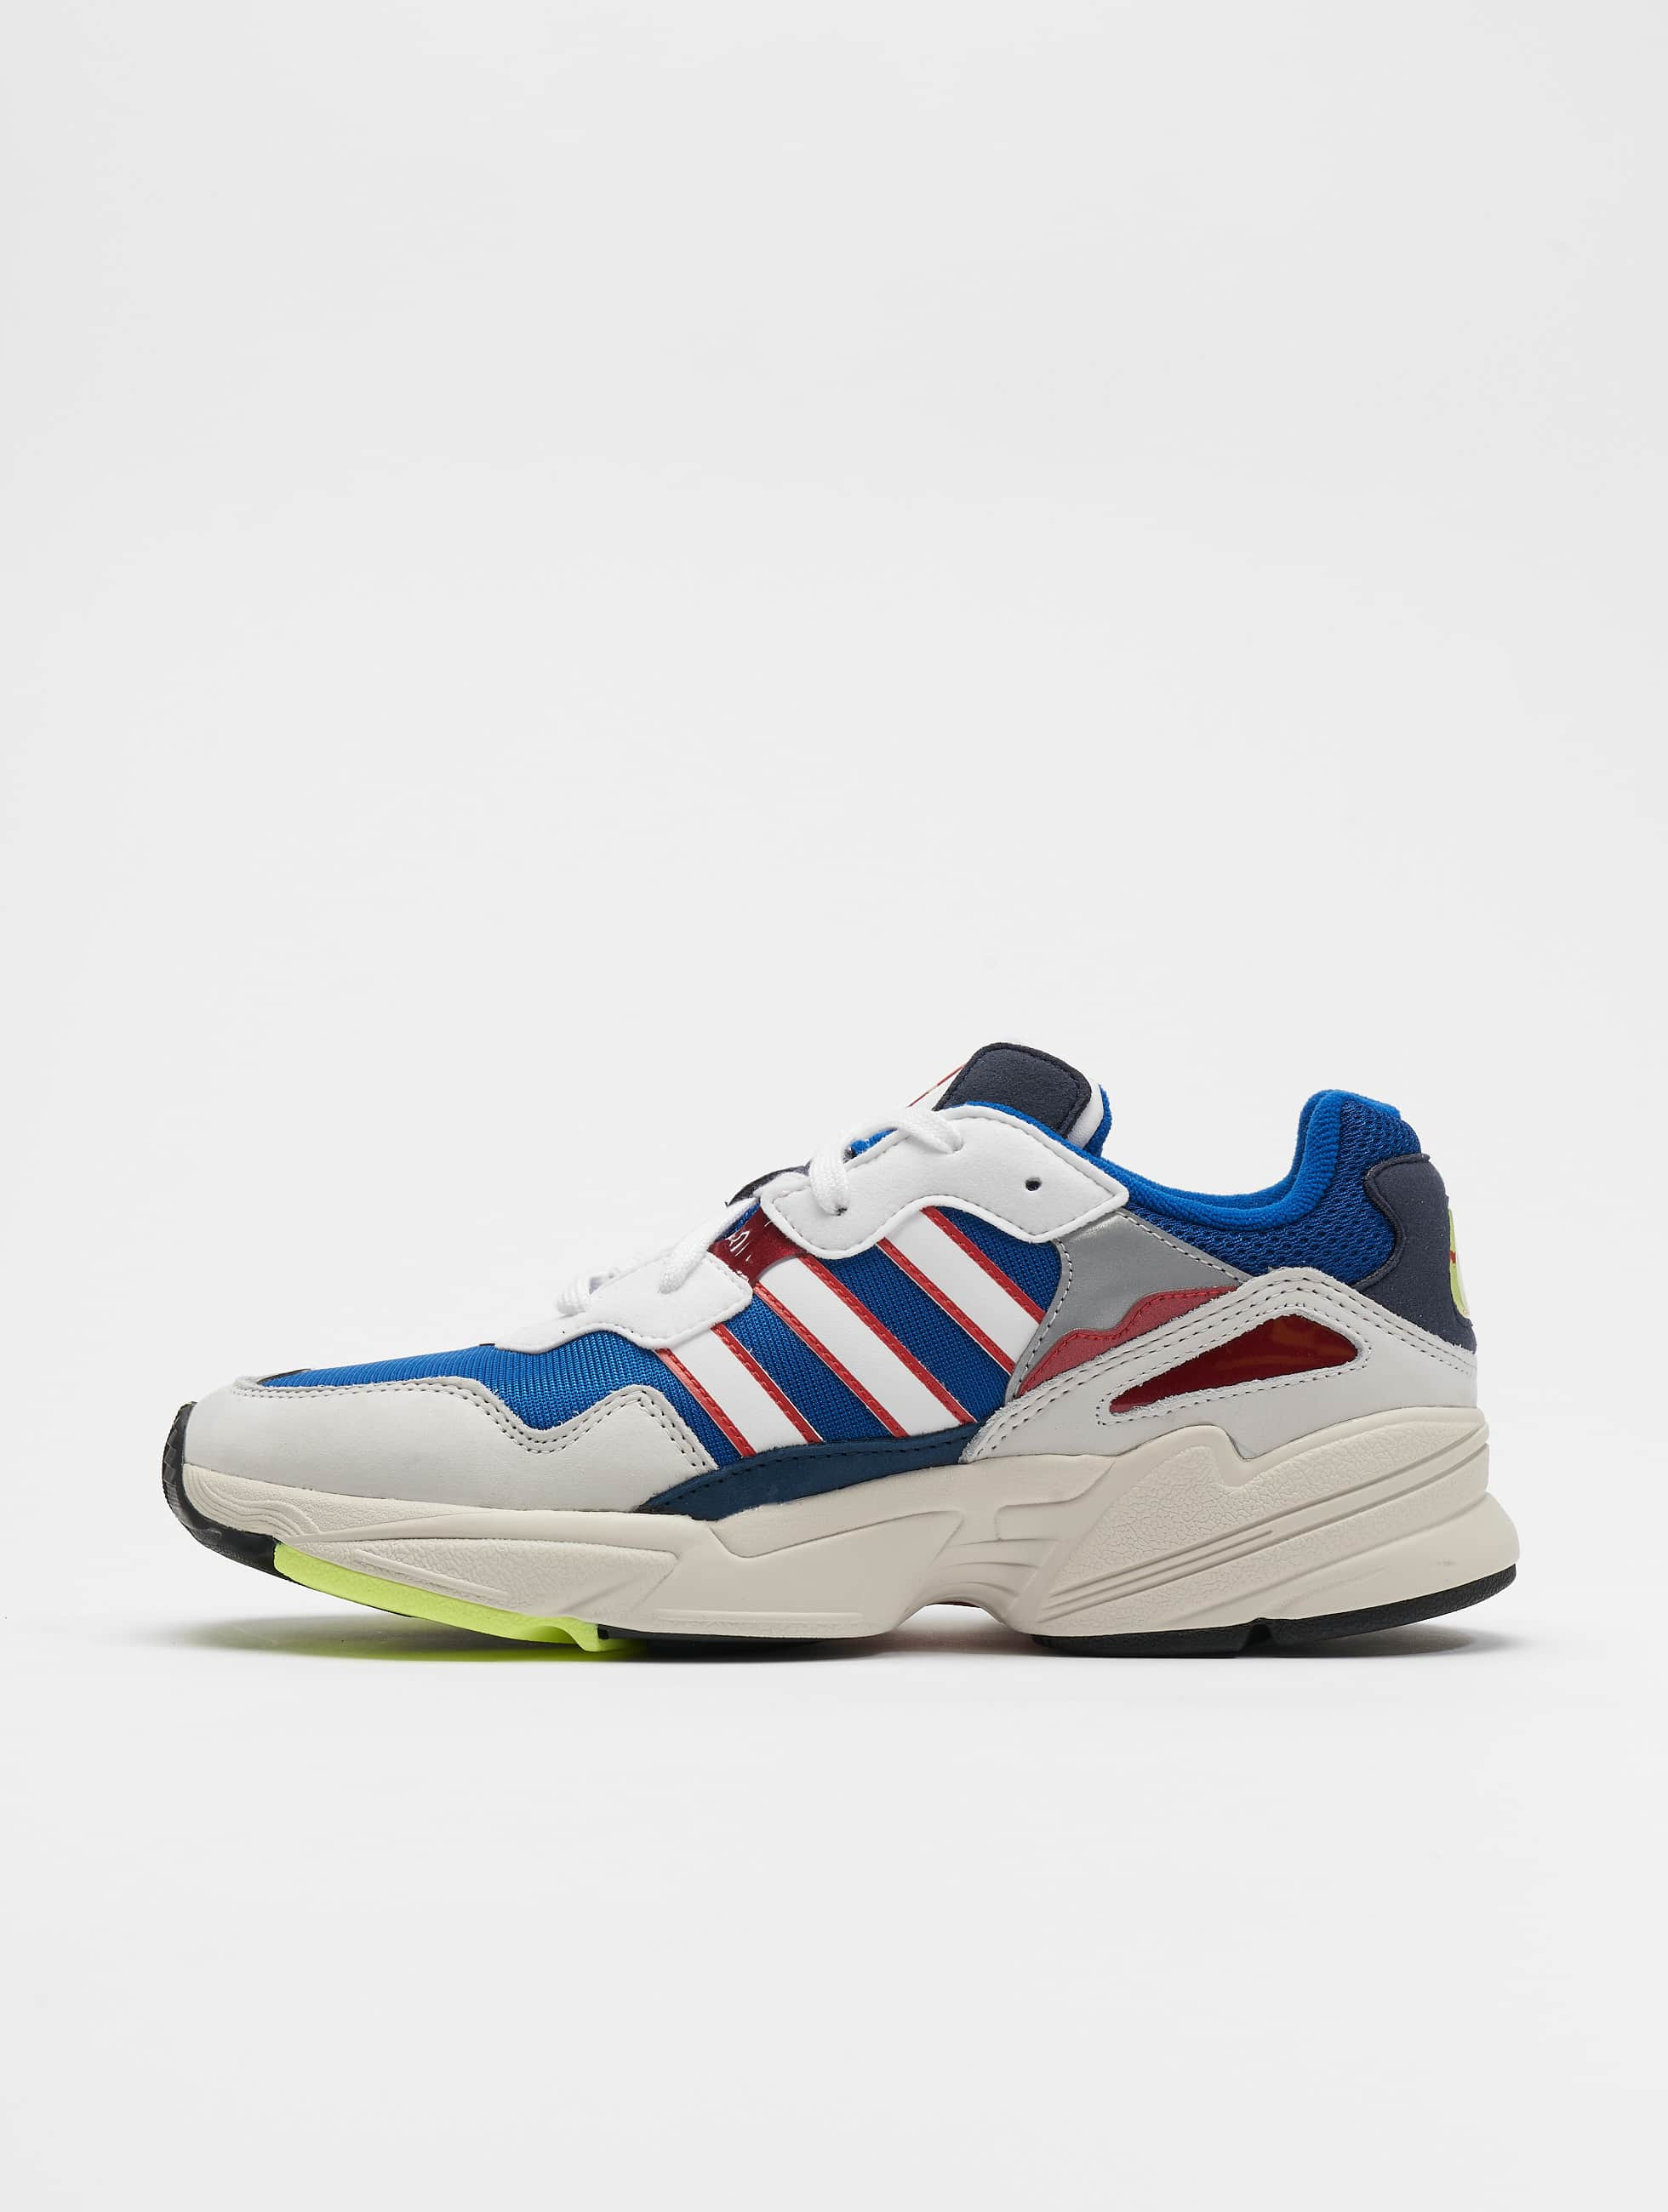 adidas Originals Yung 96 Sneakers Collegiate RoyalFootwear WhiteCollegiate Navy